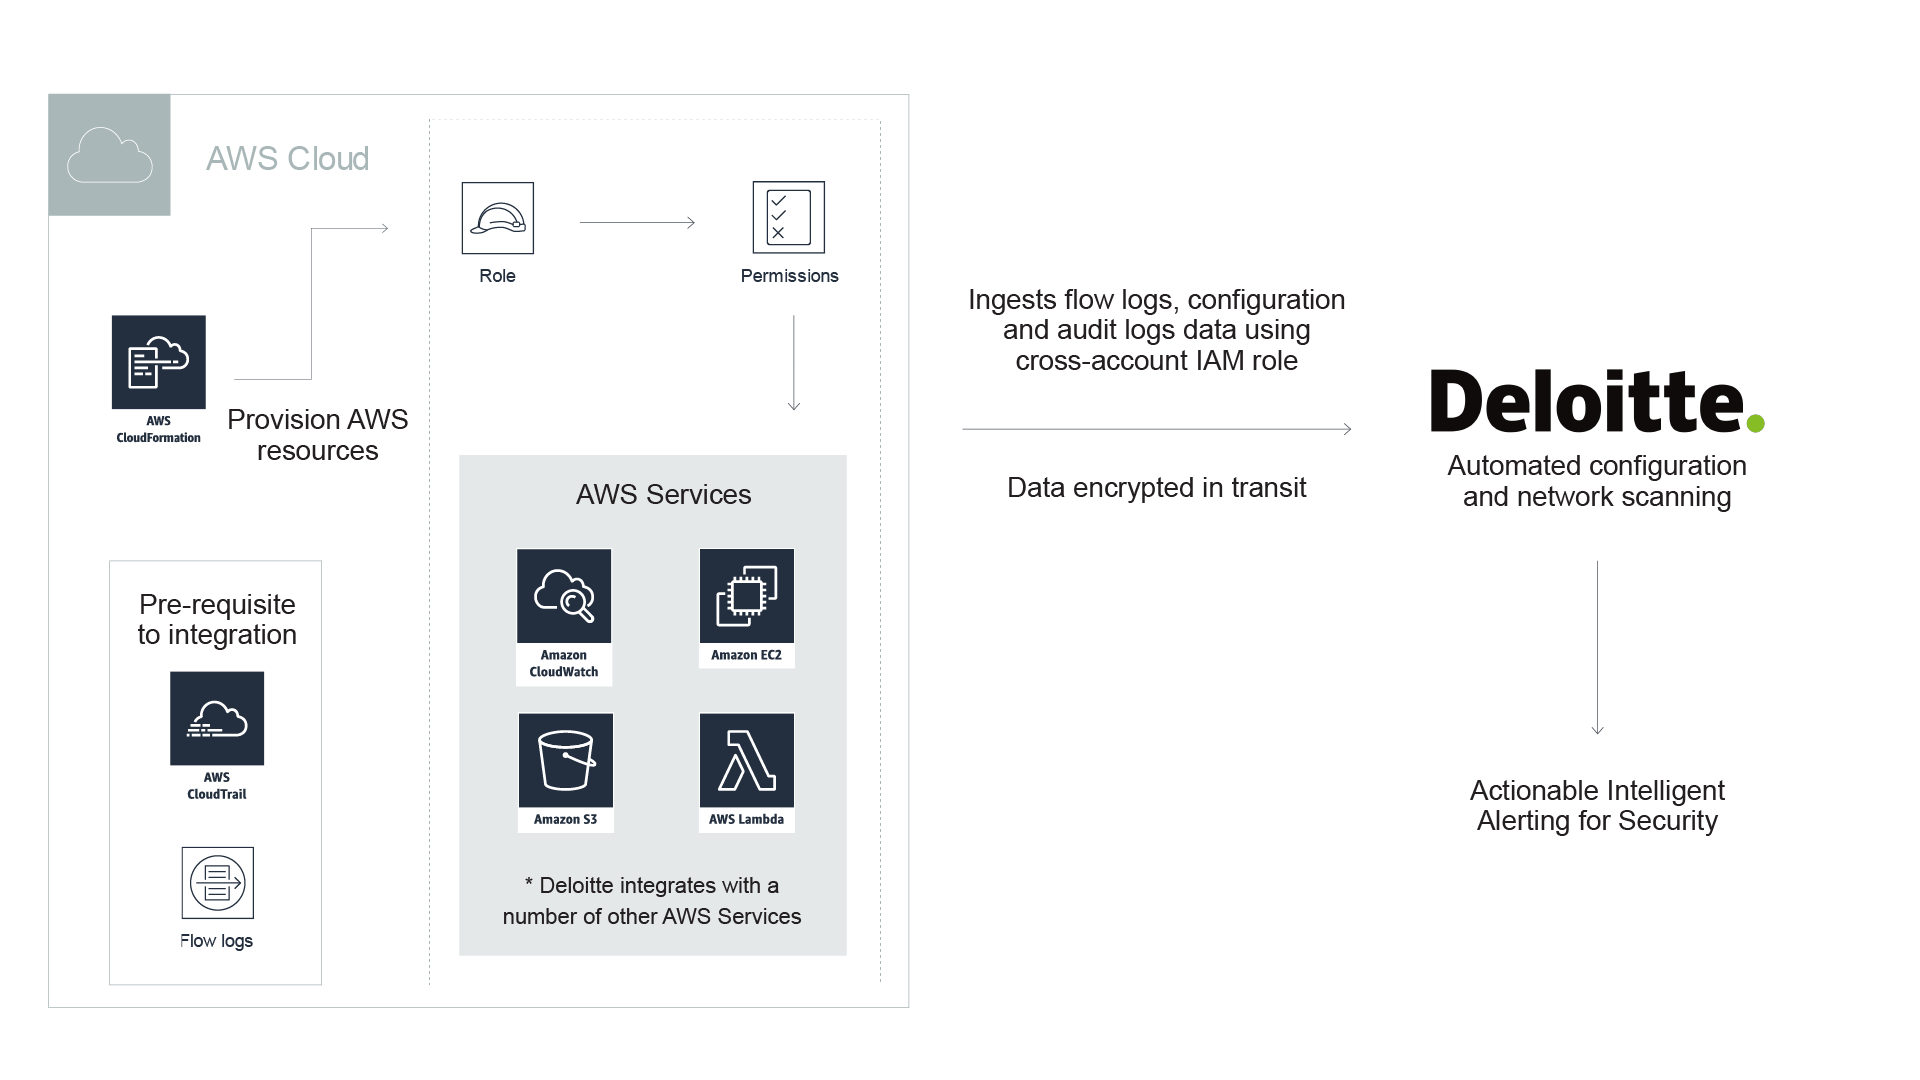 deloitte-defender-solution-diagram-solutionspace